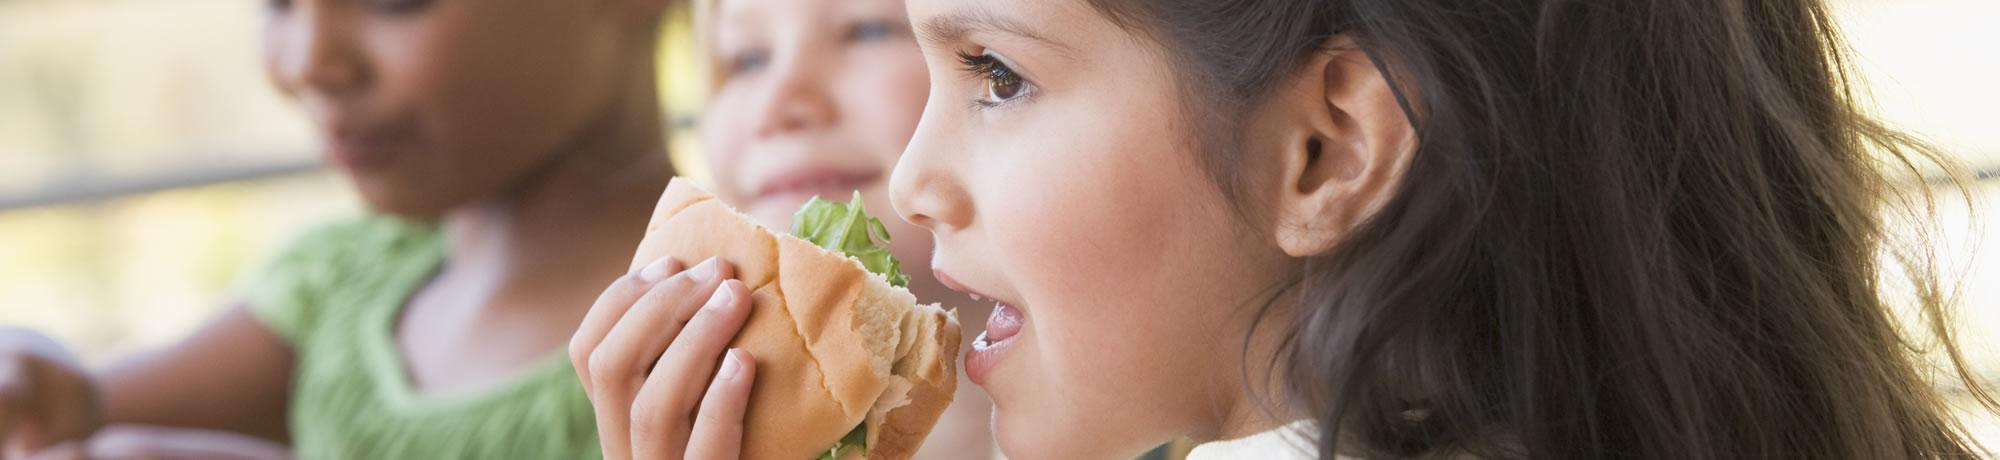 Girl eating a sandwhich.